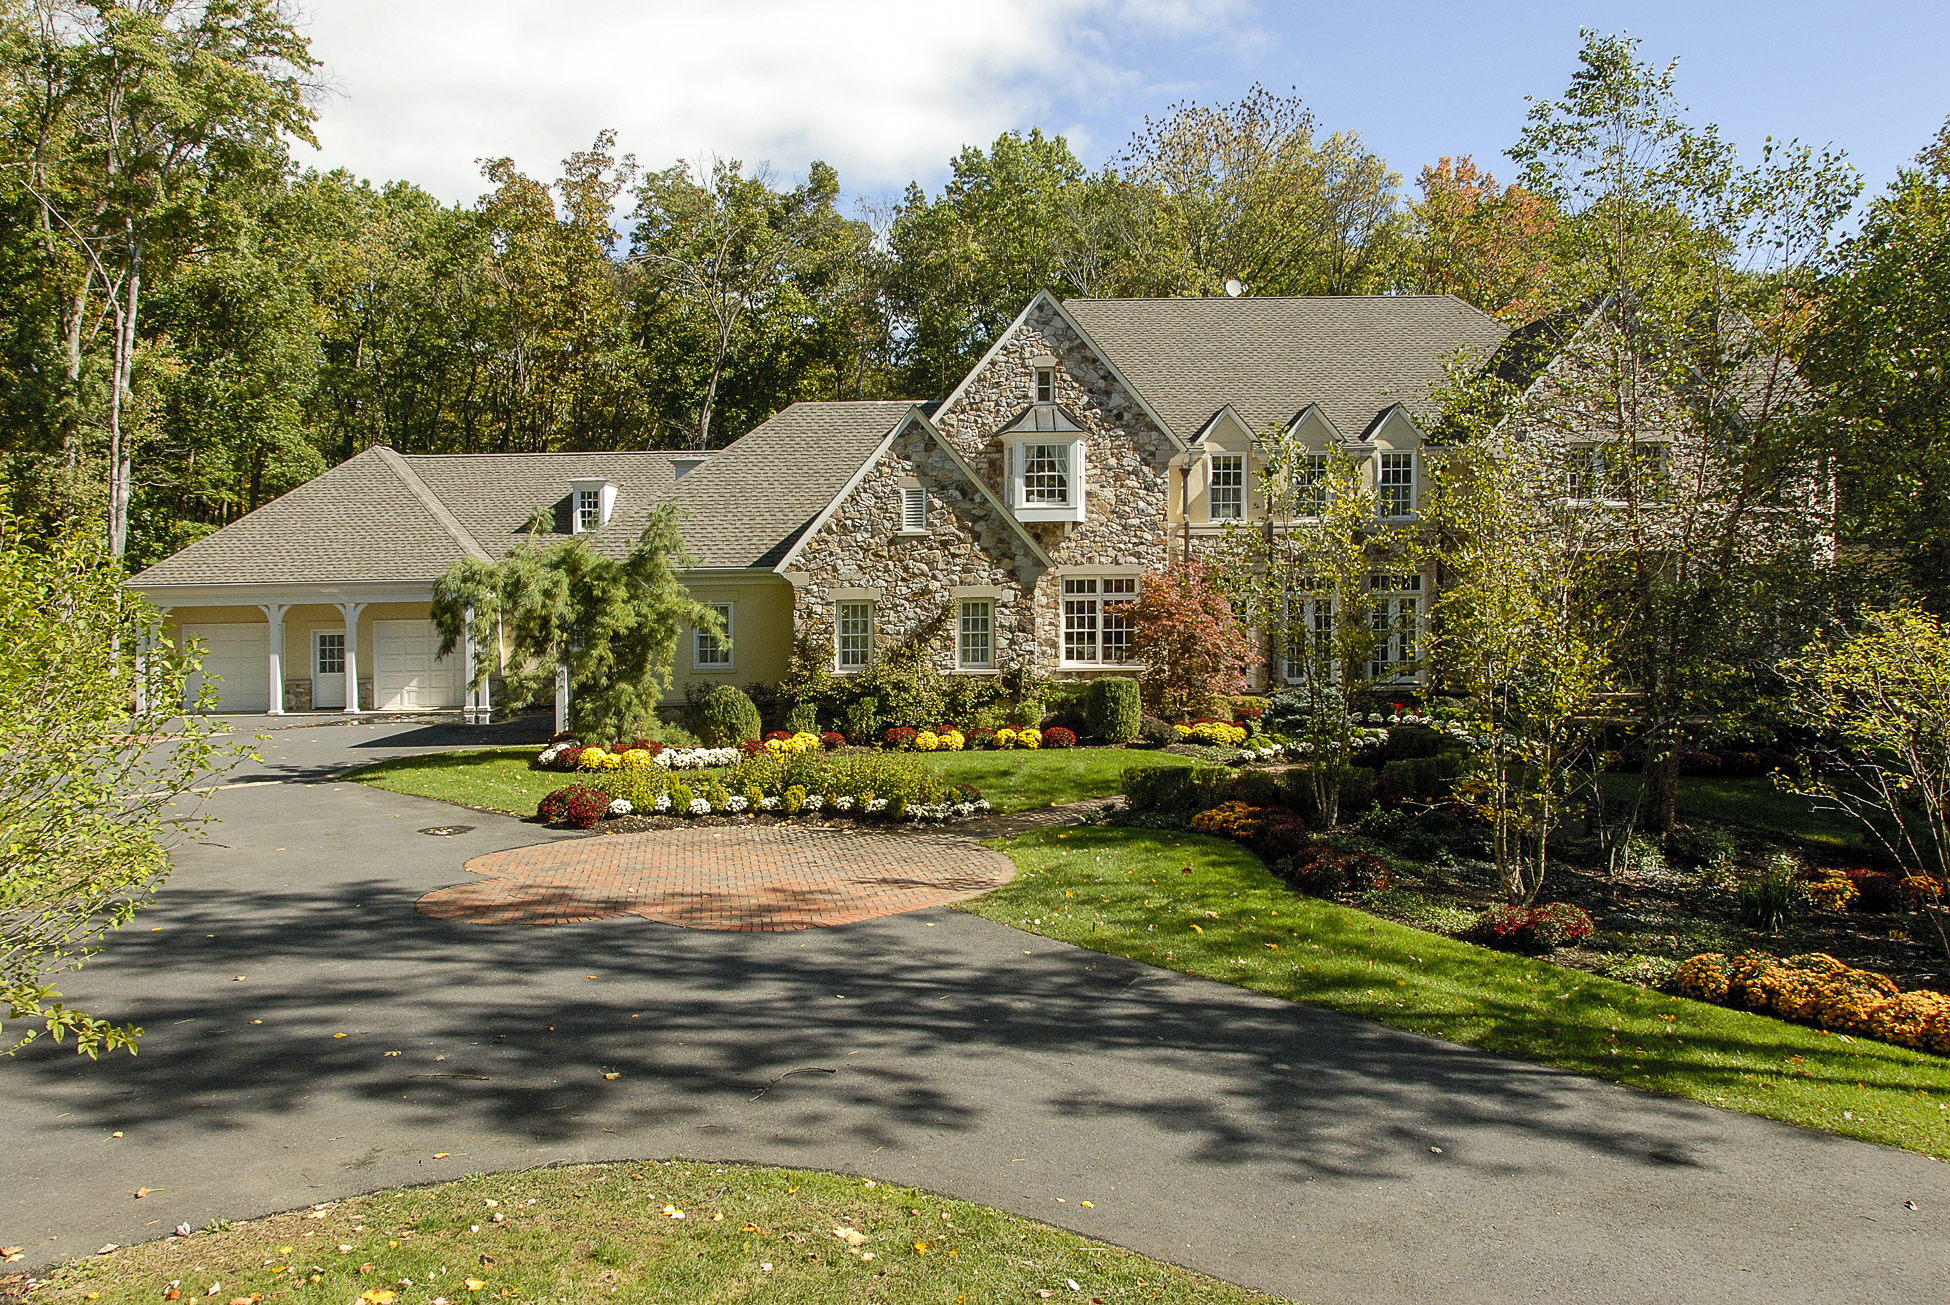 独户住宅 为 销售 在 Magnificent Manor Home in Princeton's Coveted Rushbrook 27 Running Cedar Road Princeton, 新泽西州 08540 美国